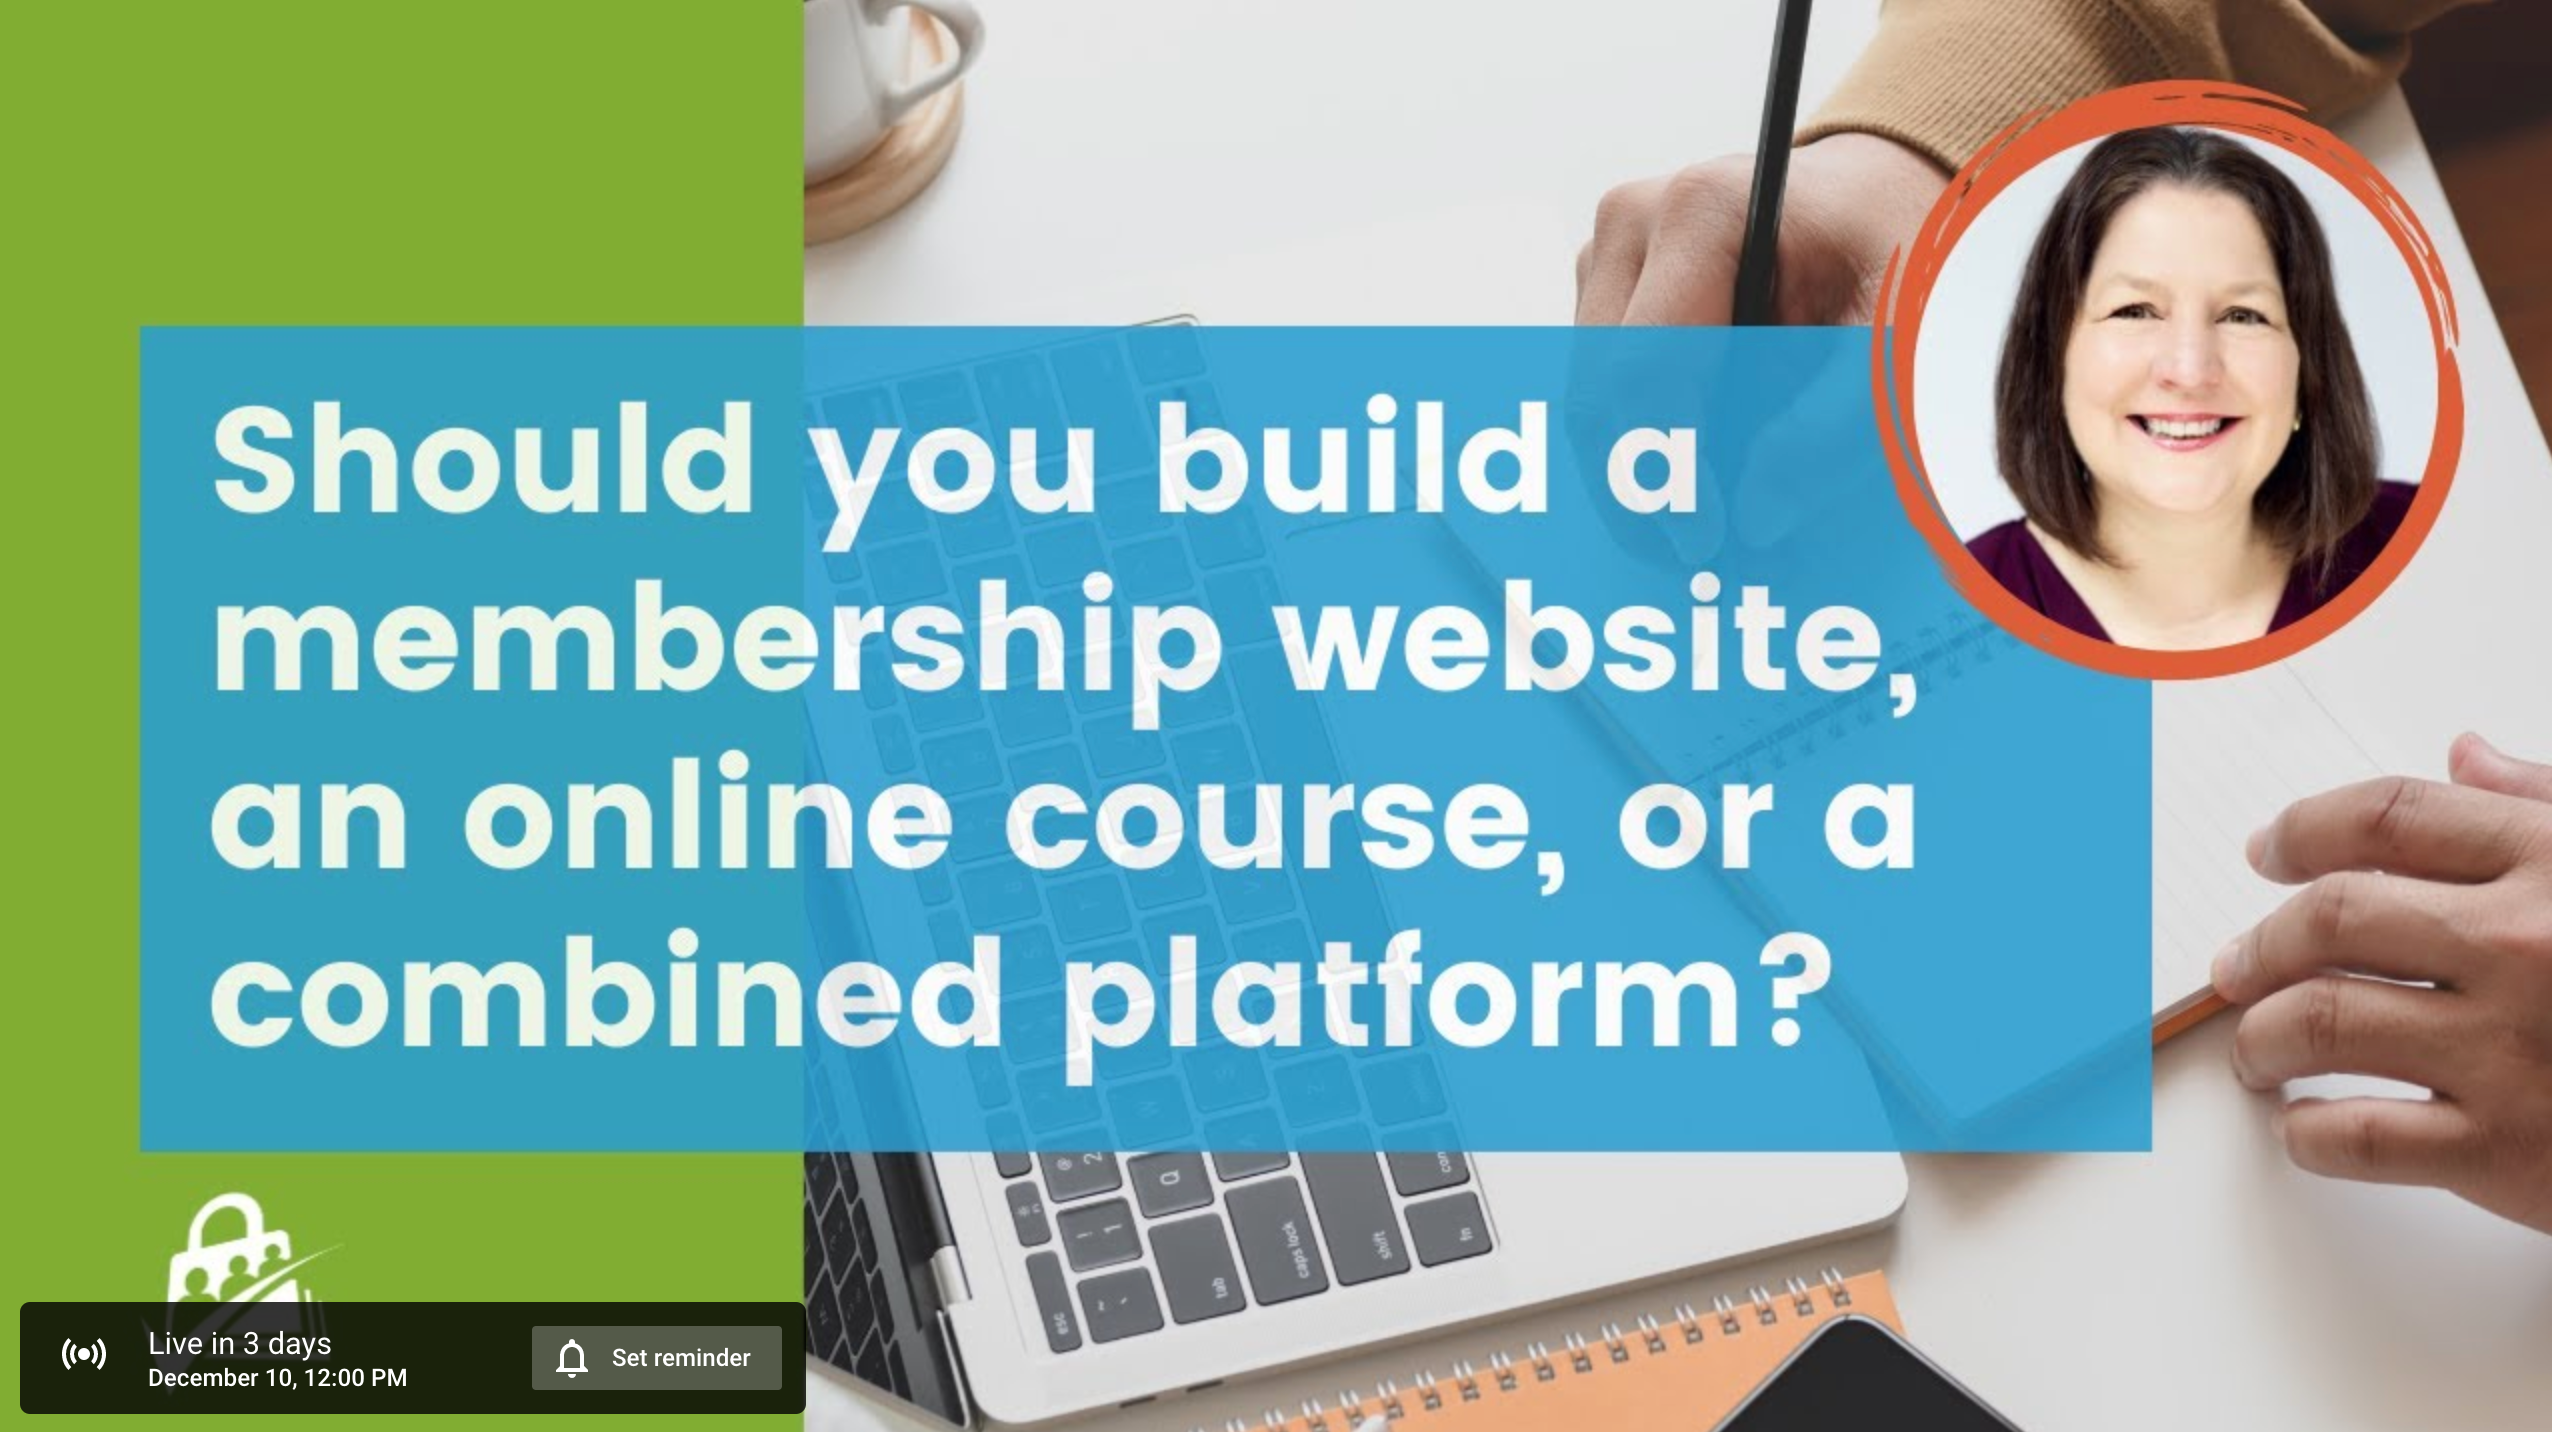 Image for livestream reads Should you build a membership website, online course, or combined platform.